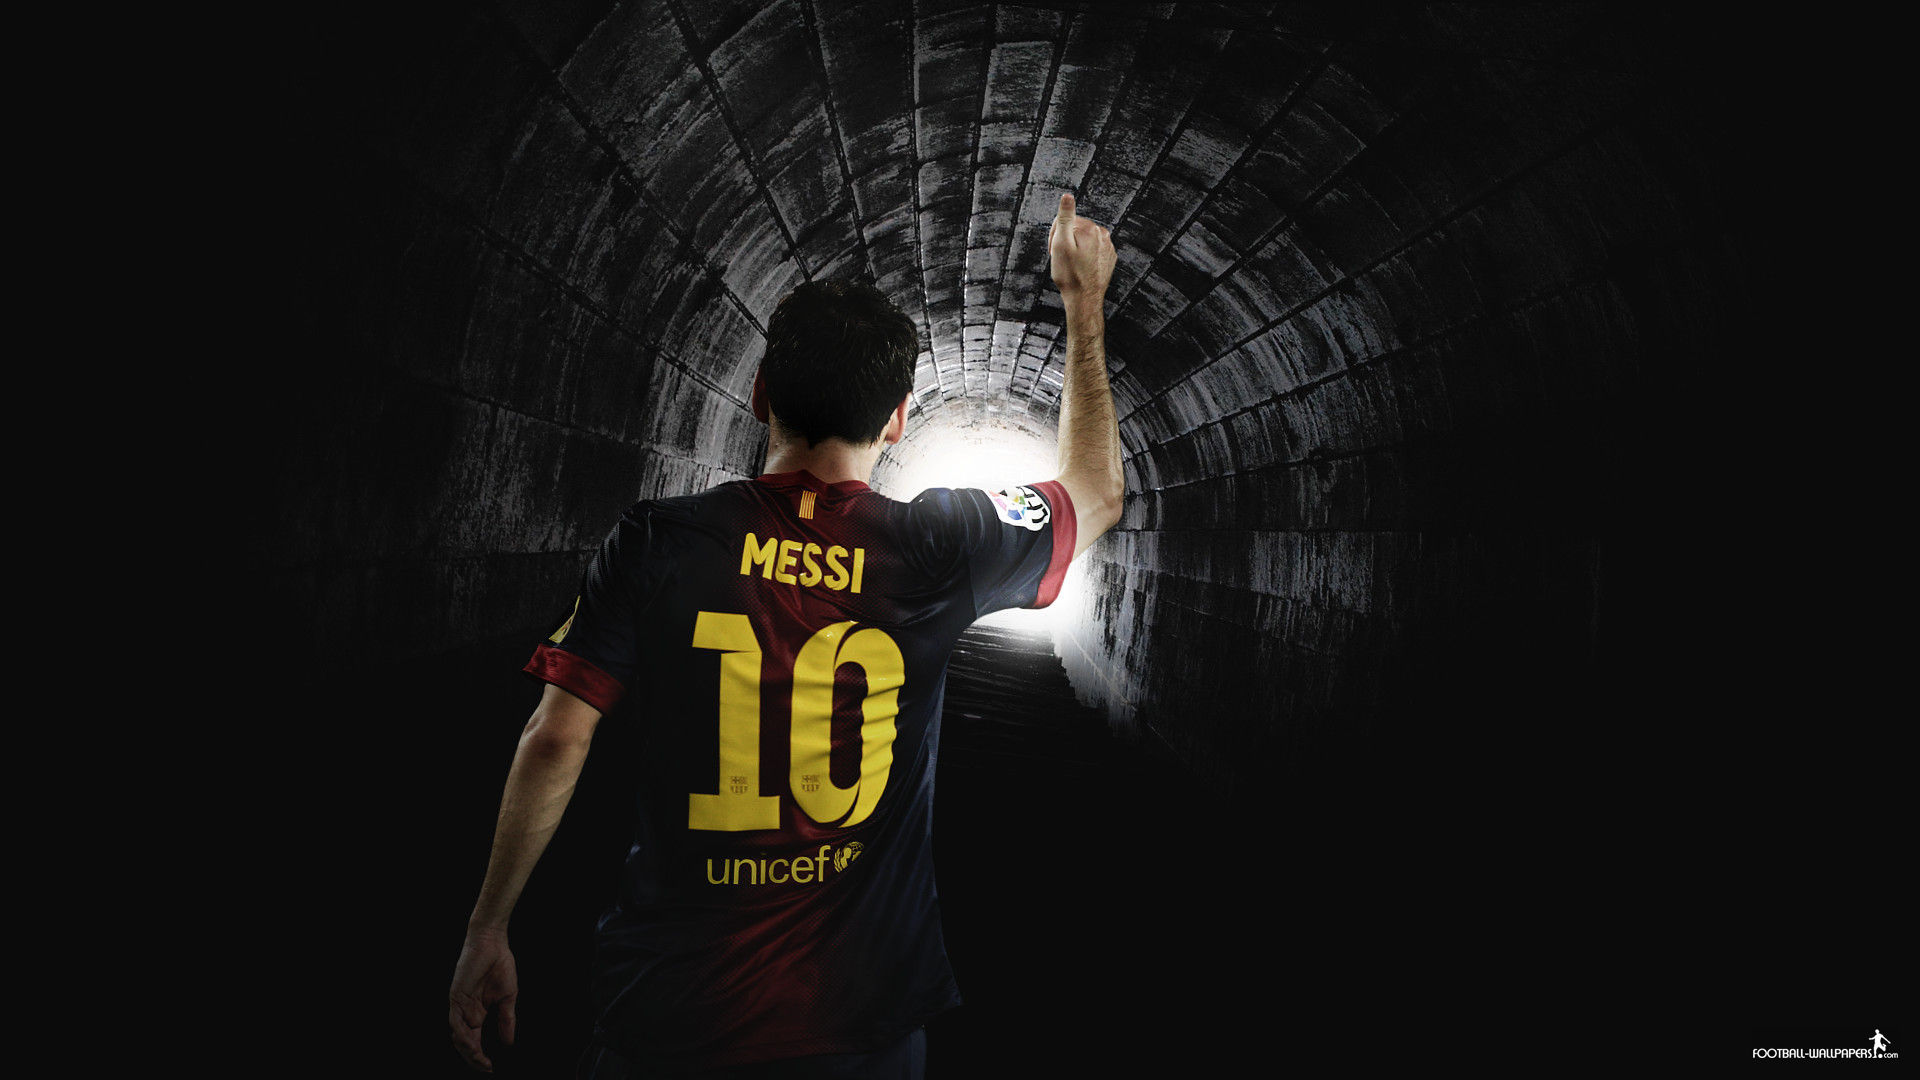 Messi Football Player Wallpapers Players Teams Leagues 1920x1080